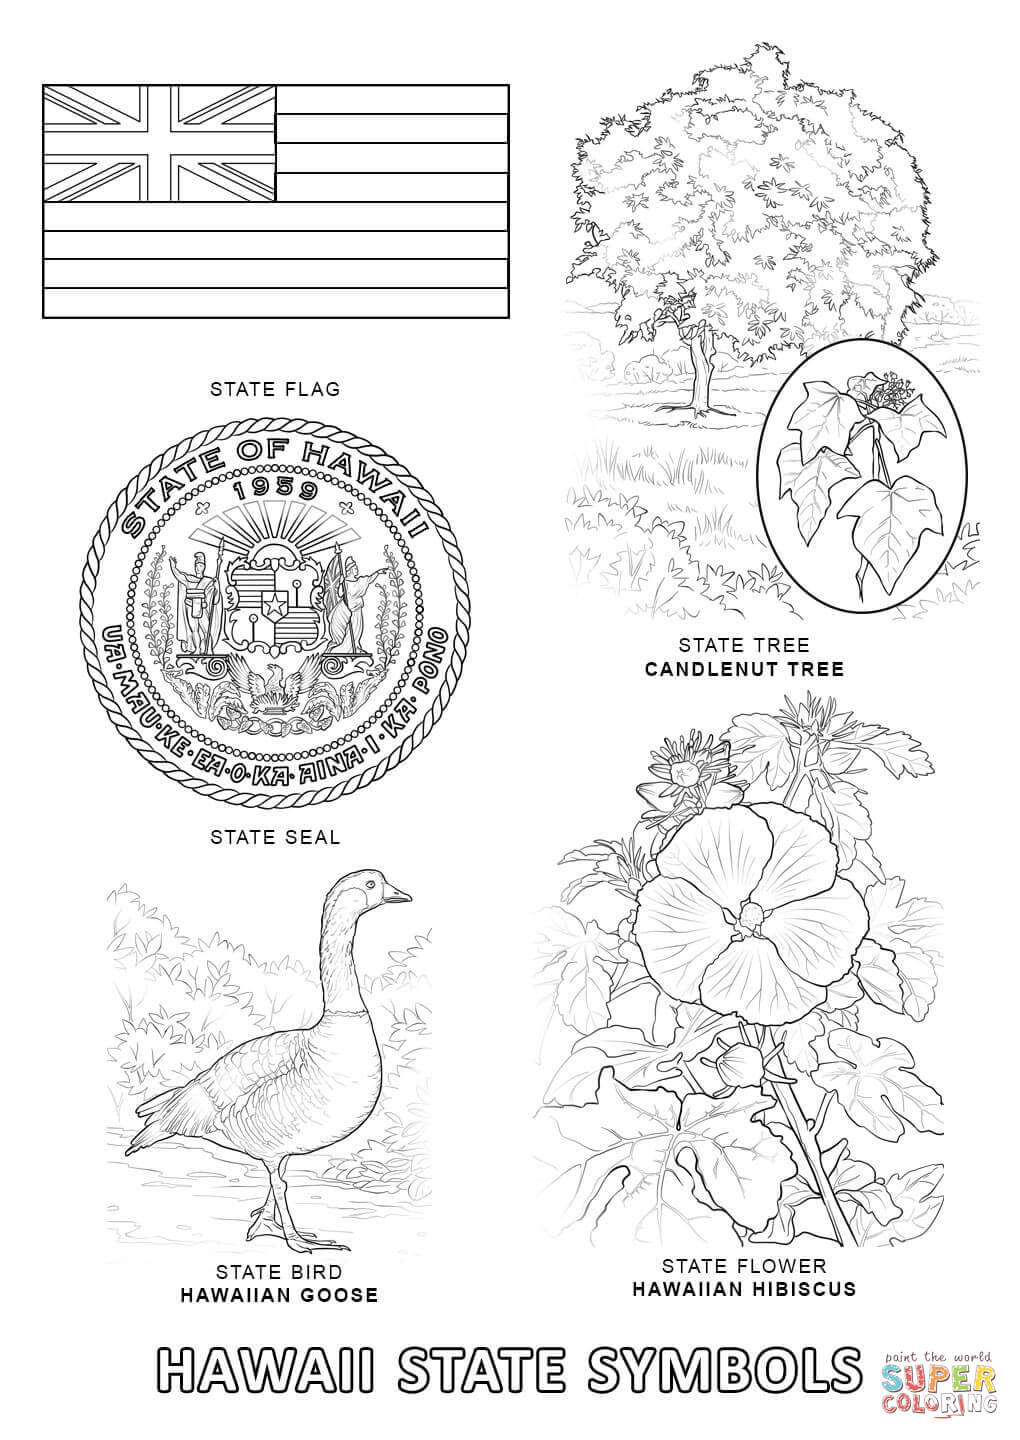 state symbols coloring free printable home ktjgm96qc dogs clipart fuscia color crafting coloring pages Hawaii Coloring Page